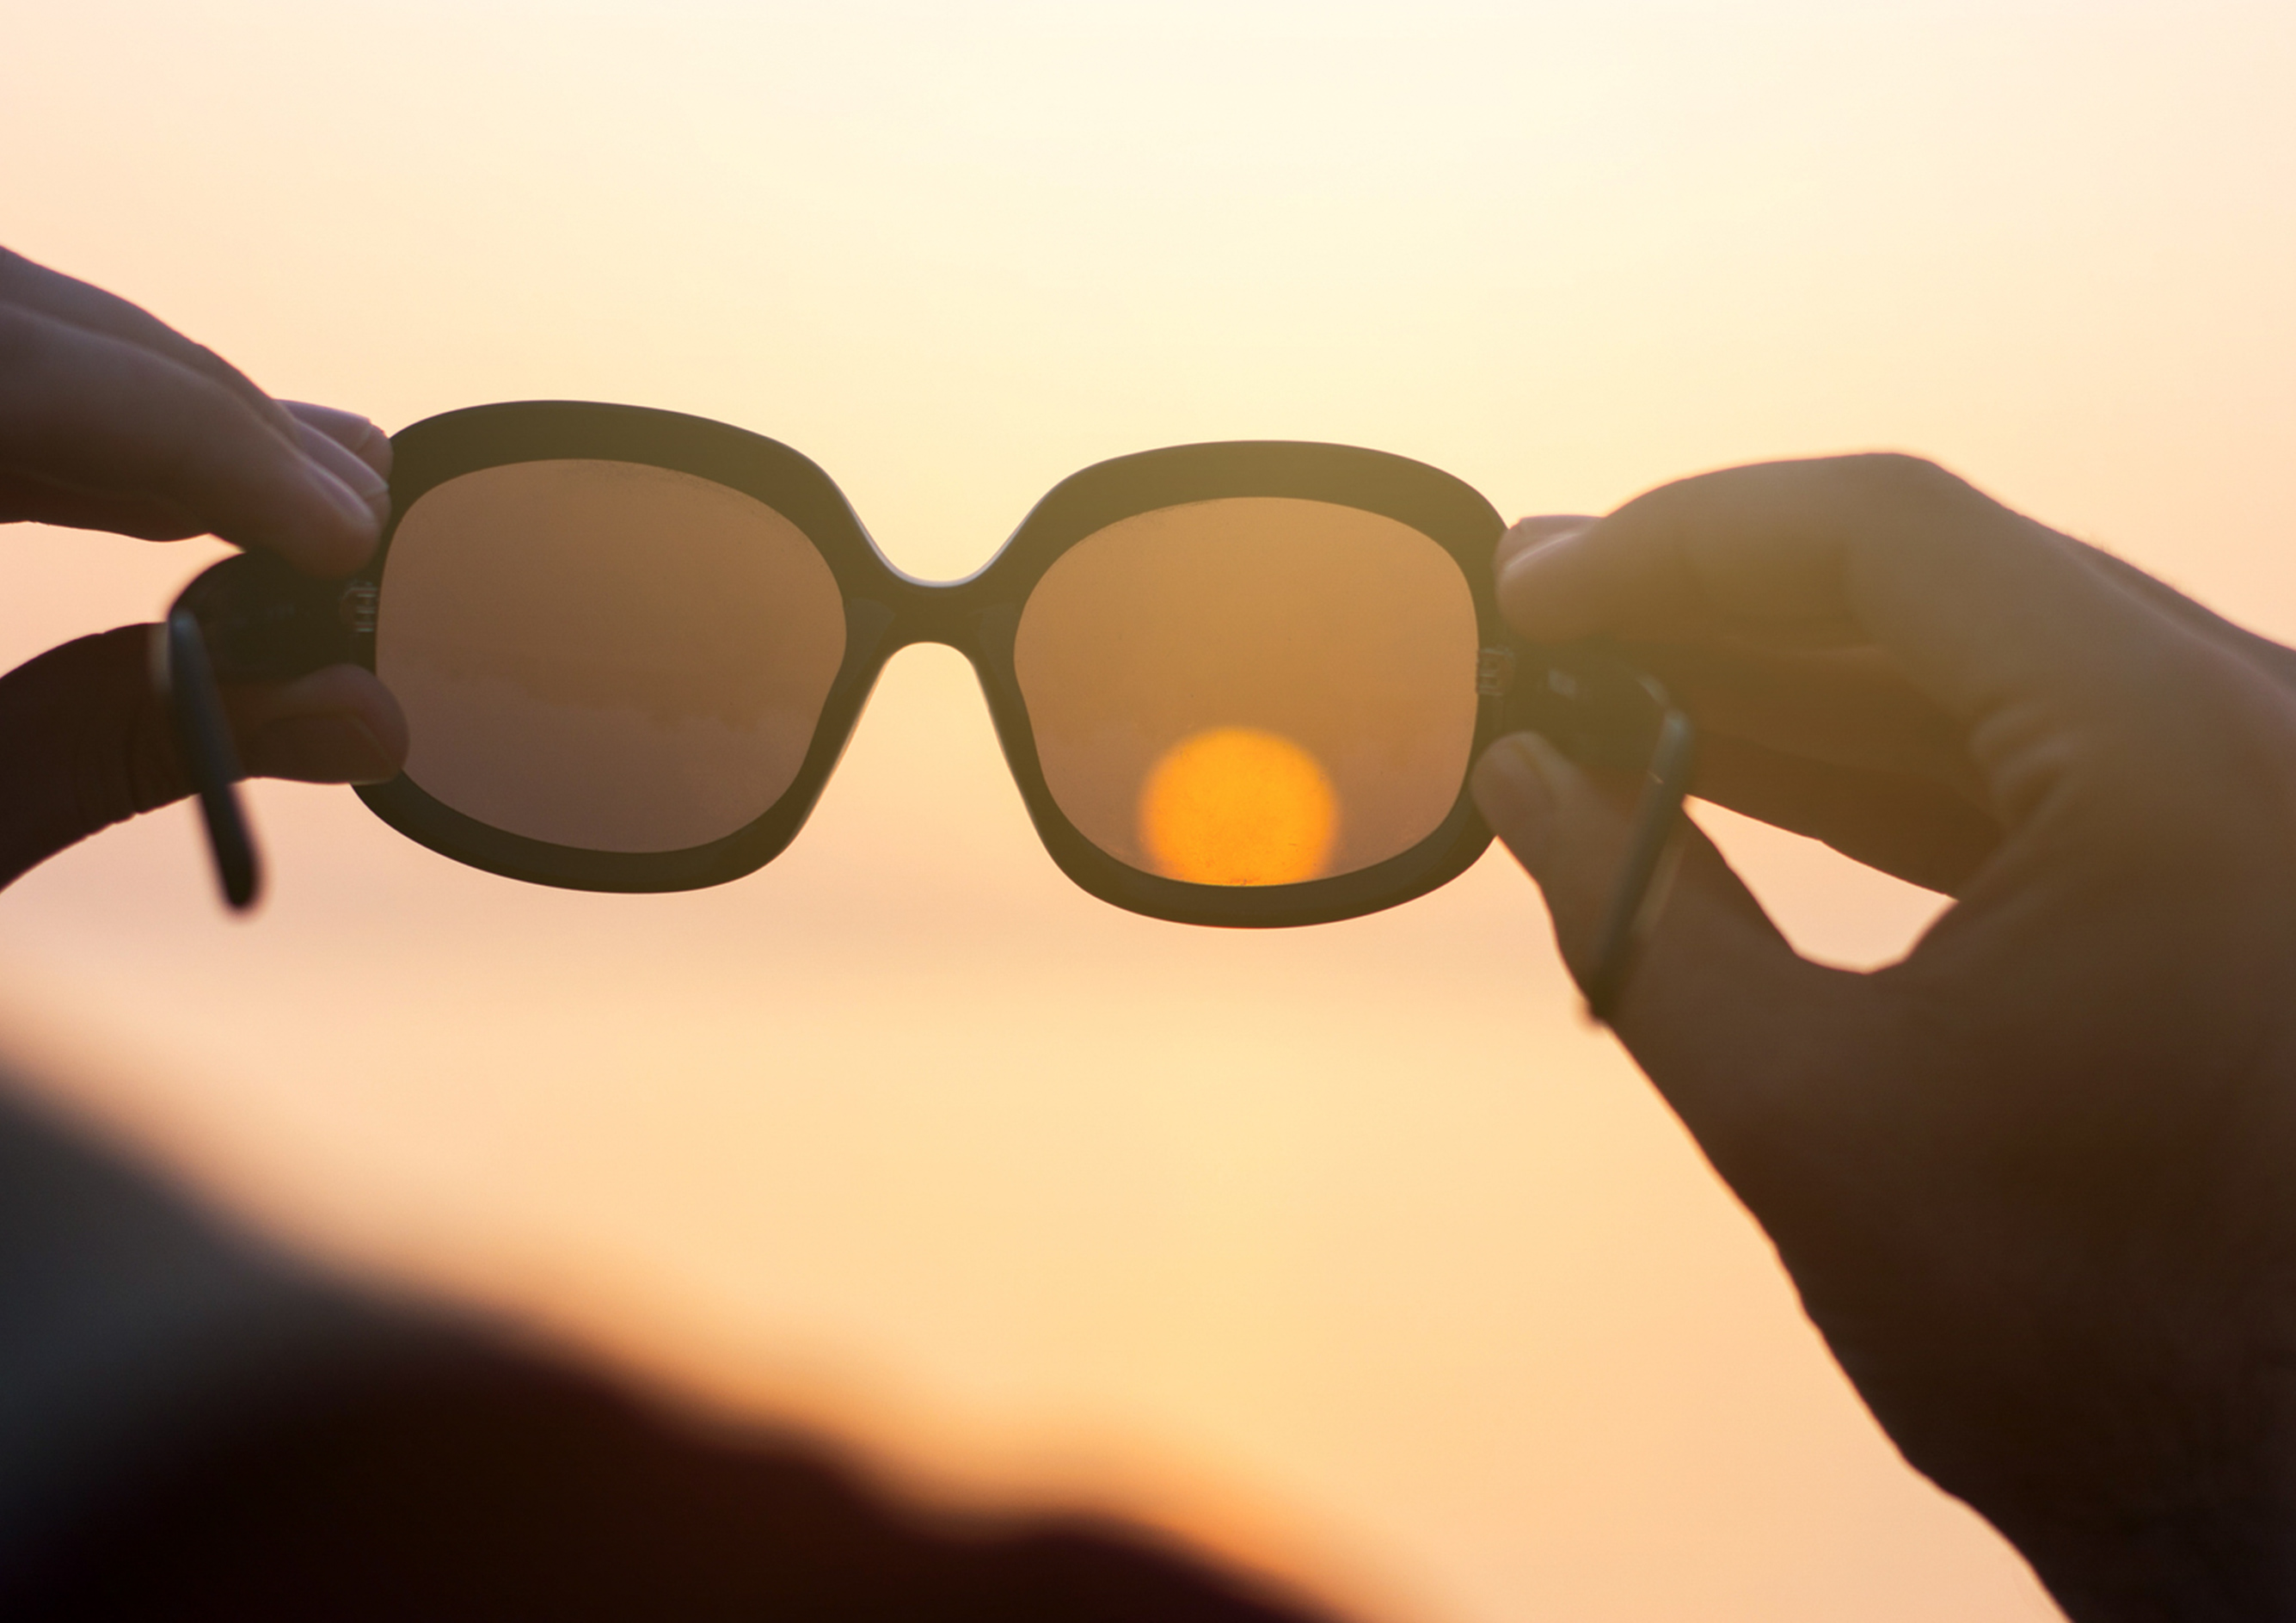 Person holding sunglasses up to sun